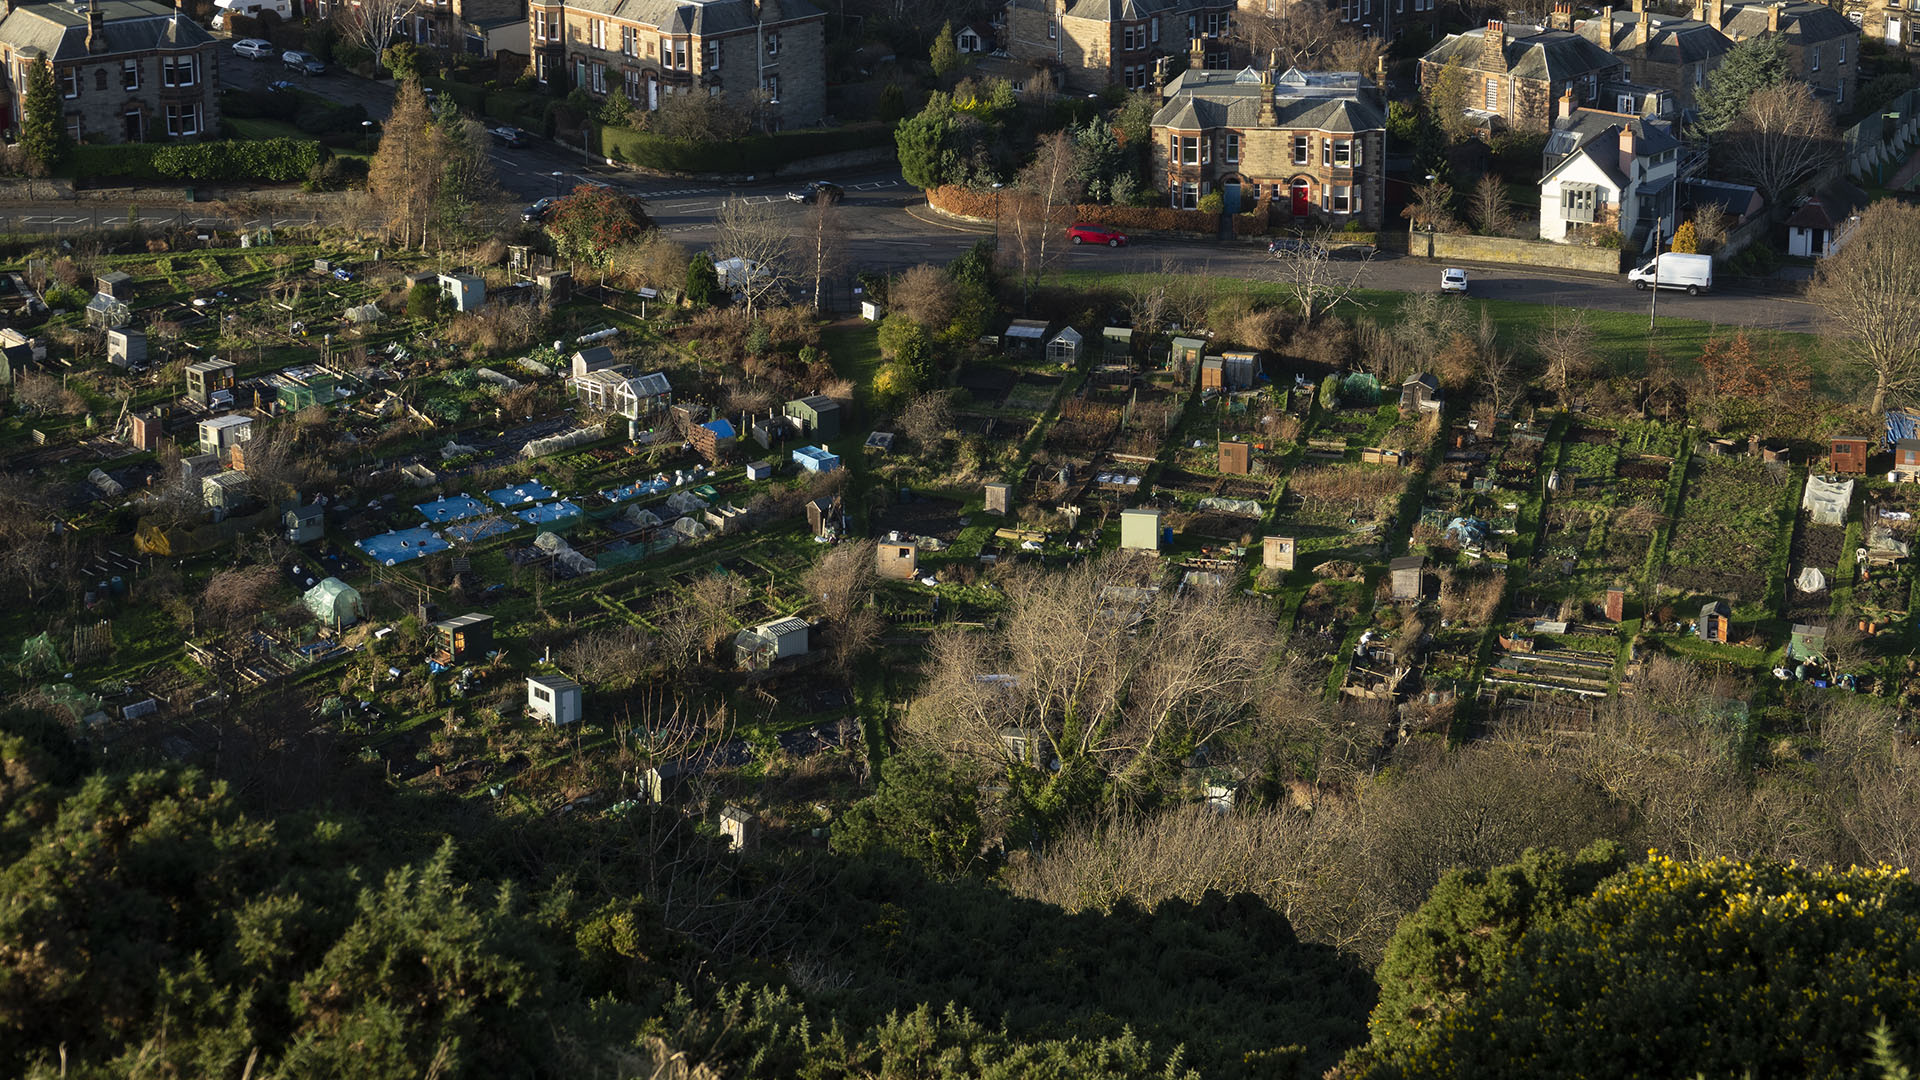 Allotments 20191209b